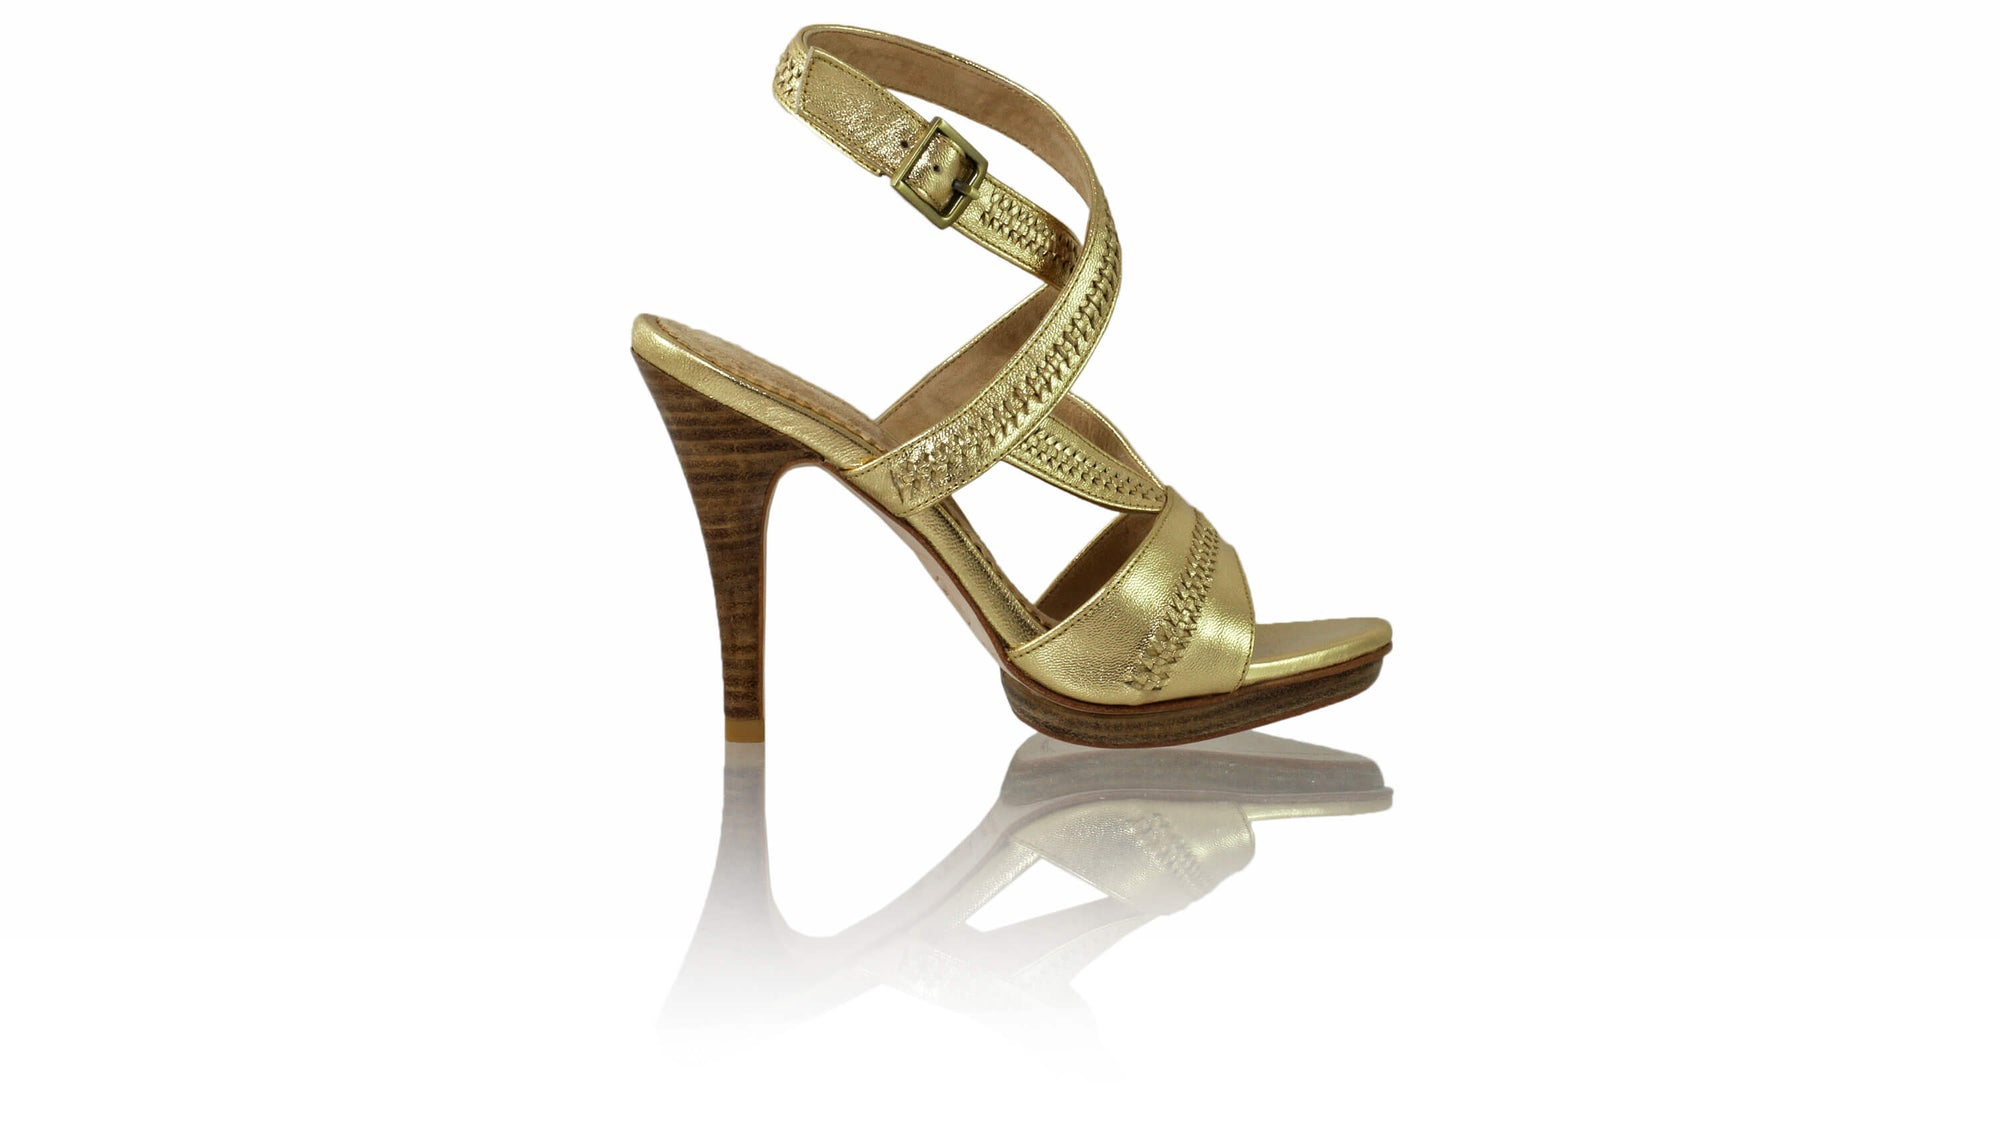 Leather-shoes-Peru 115mm SH PF - Gold-sandals higheel-NILUH DJELANTIK-NILUH DJELANTIK